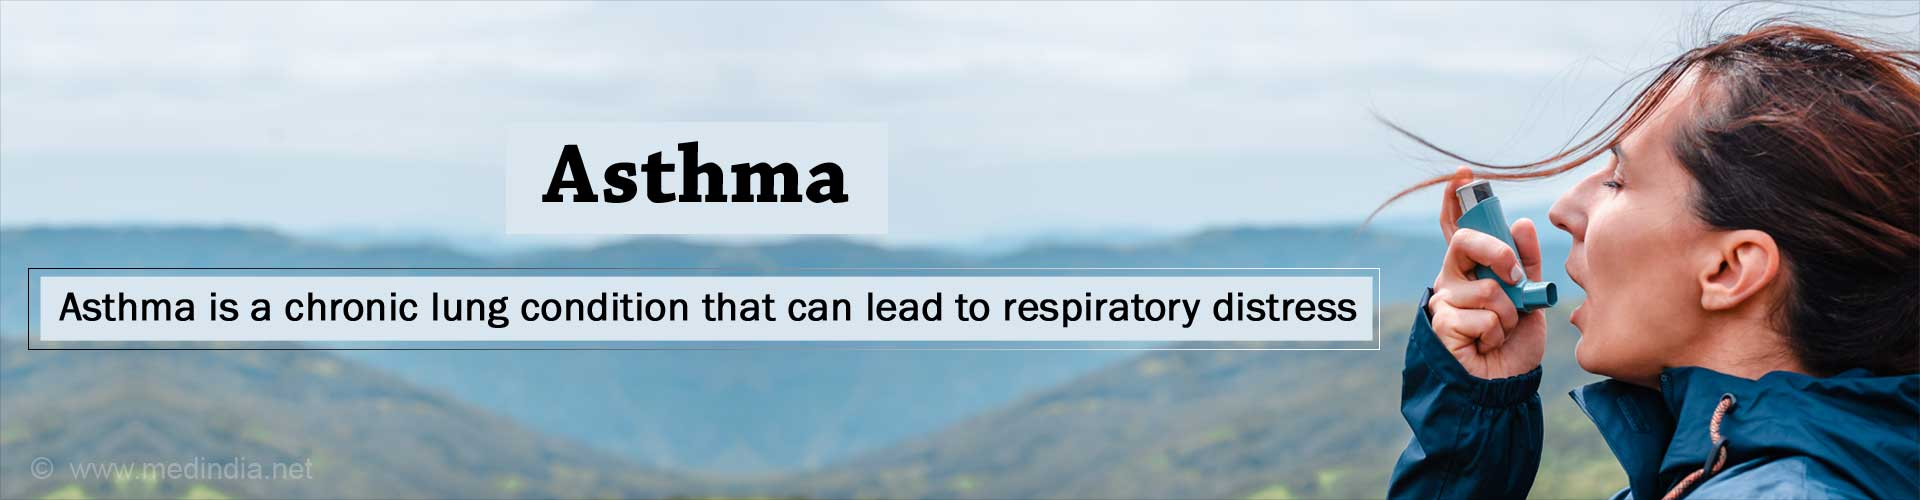 Tests for Asthma - Medical and Family History, Diagnosis, Treatment